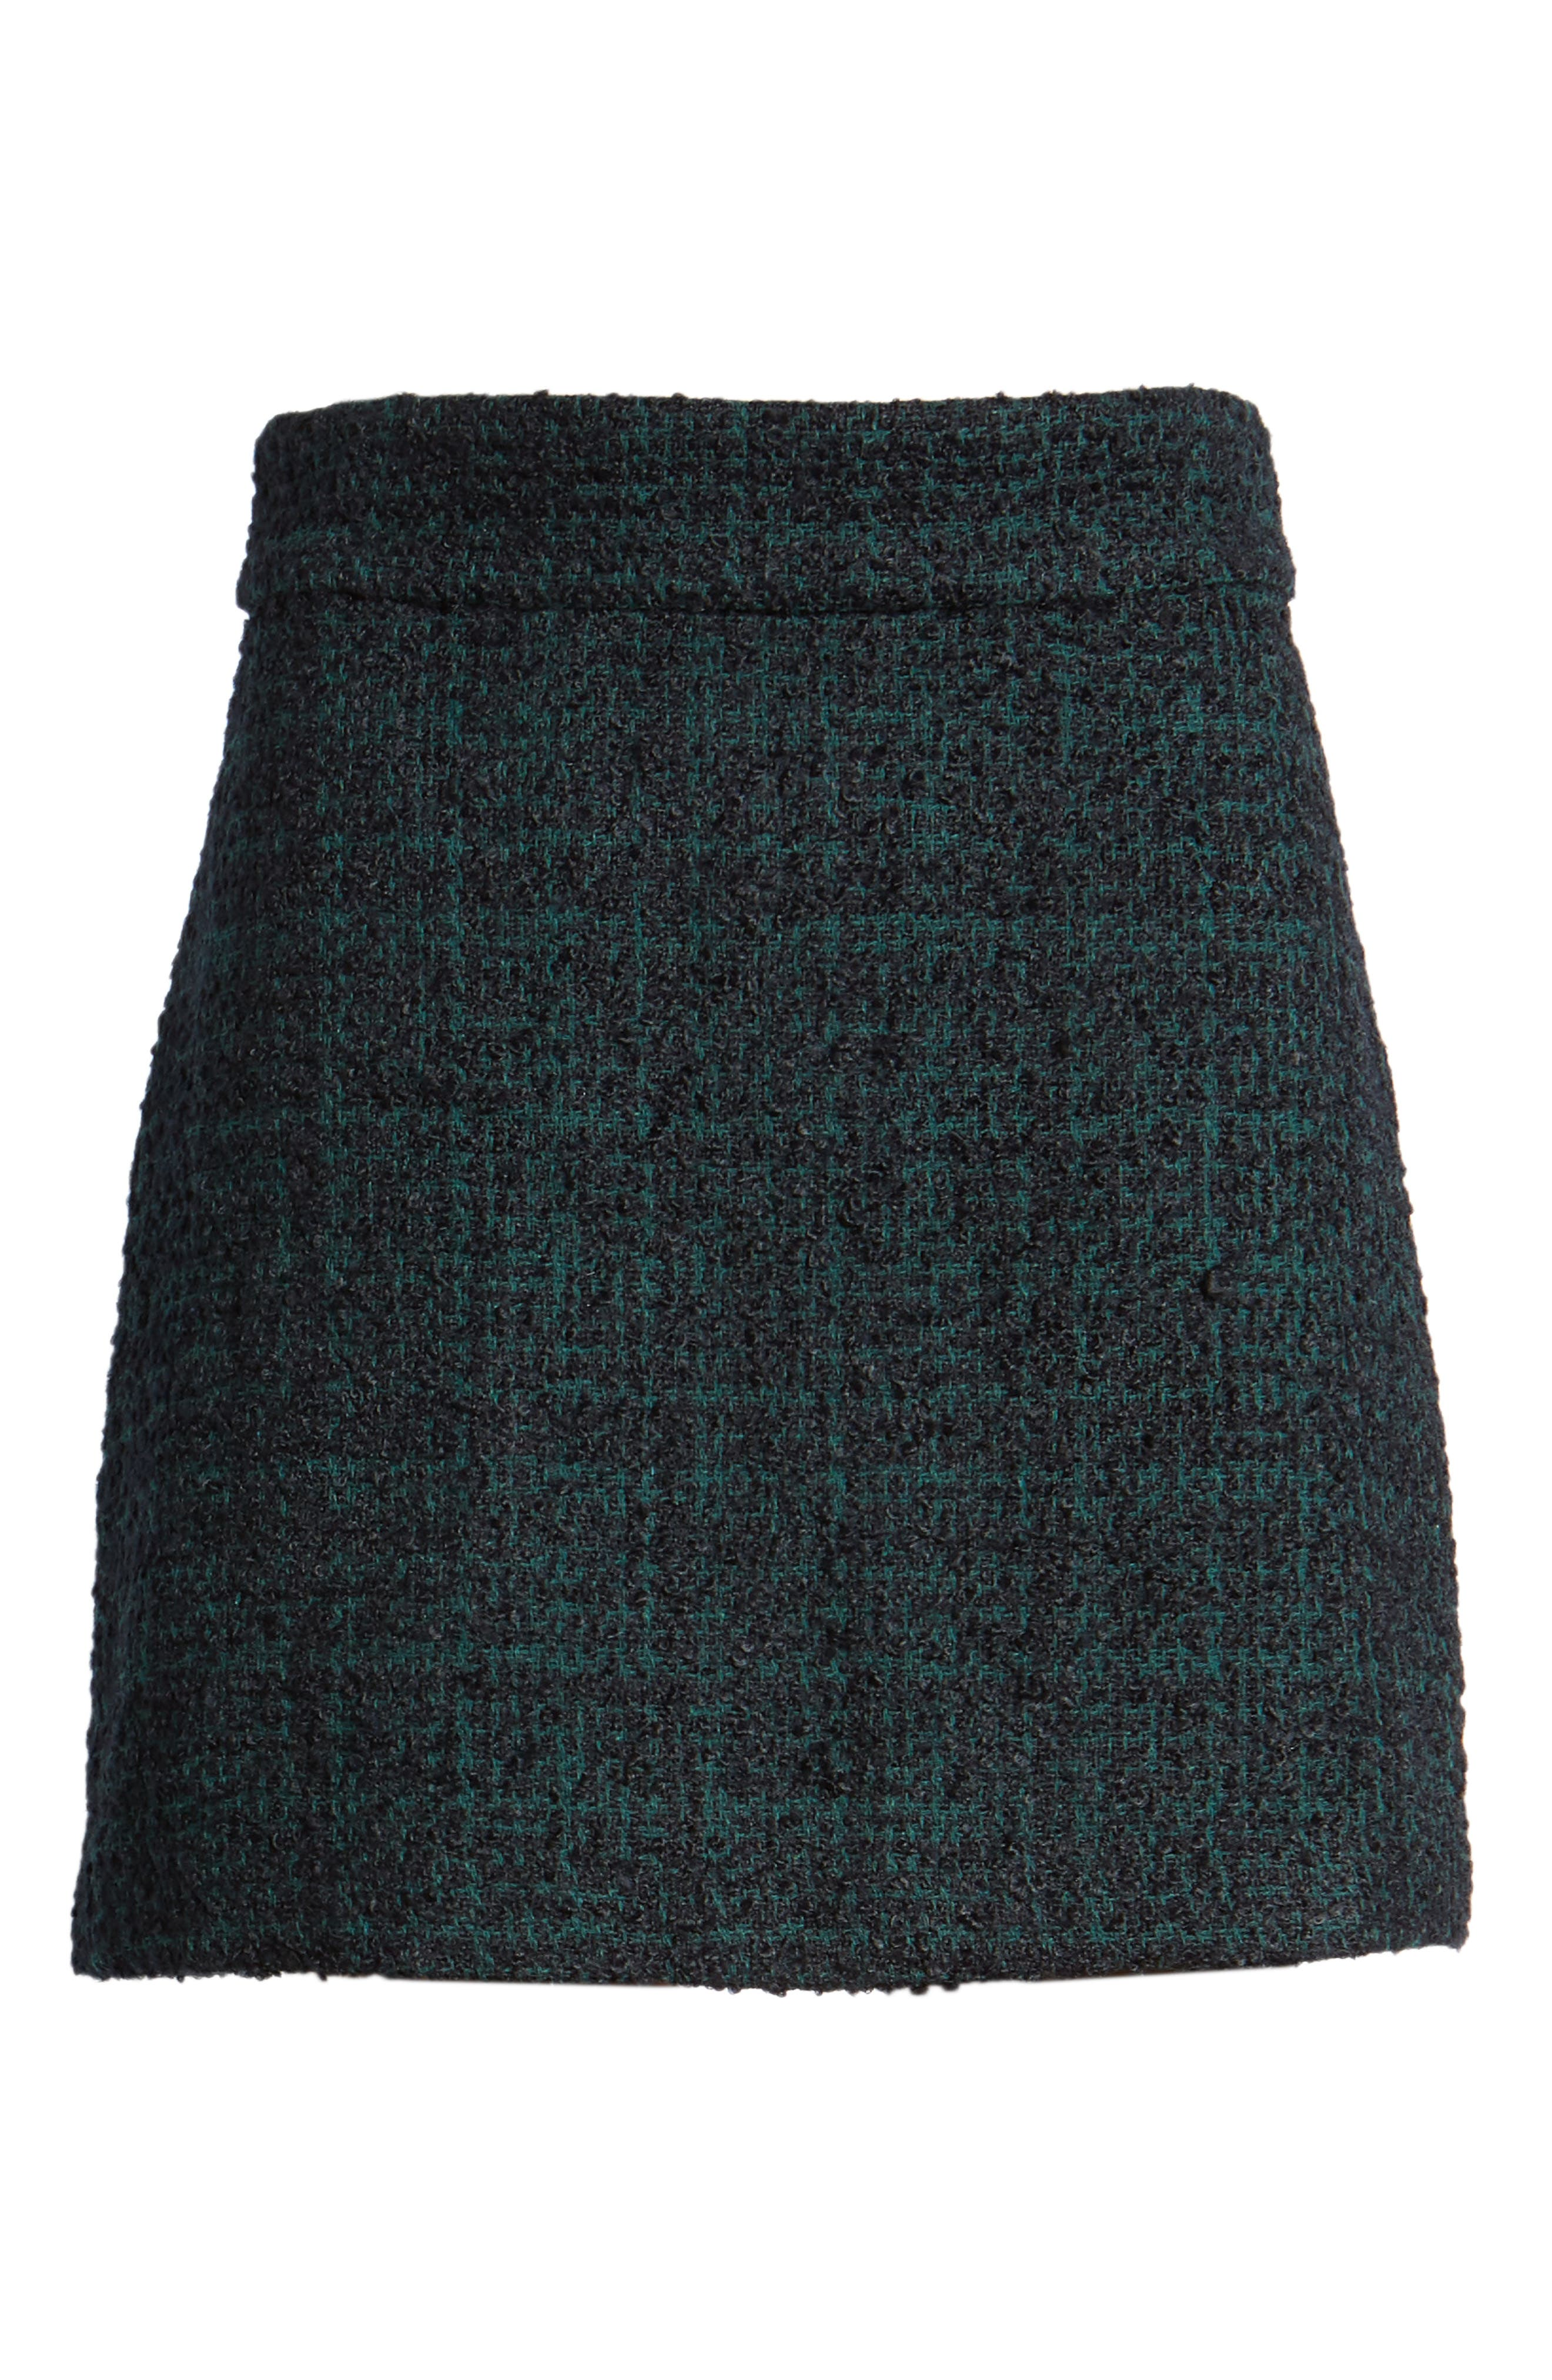 Tweed Miniskirt,                             Alternate thumbnail 6, color,                             021